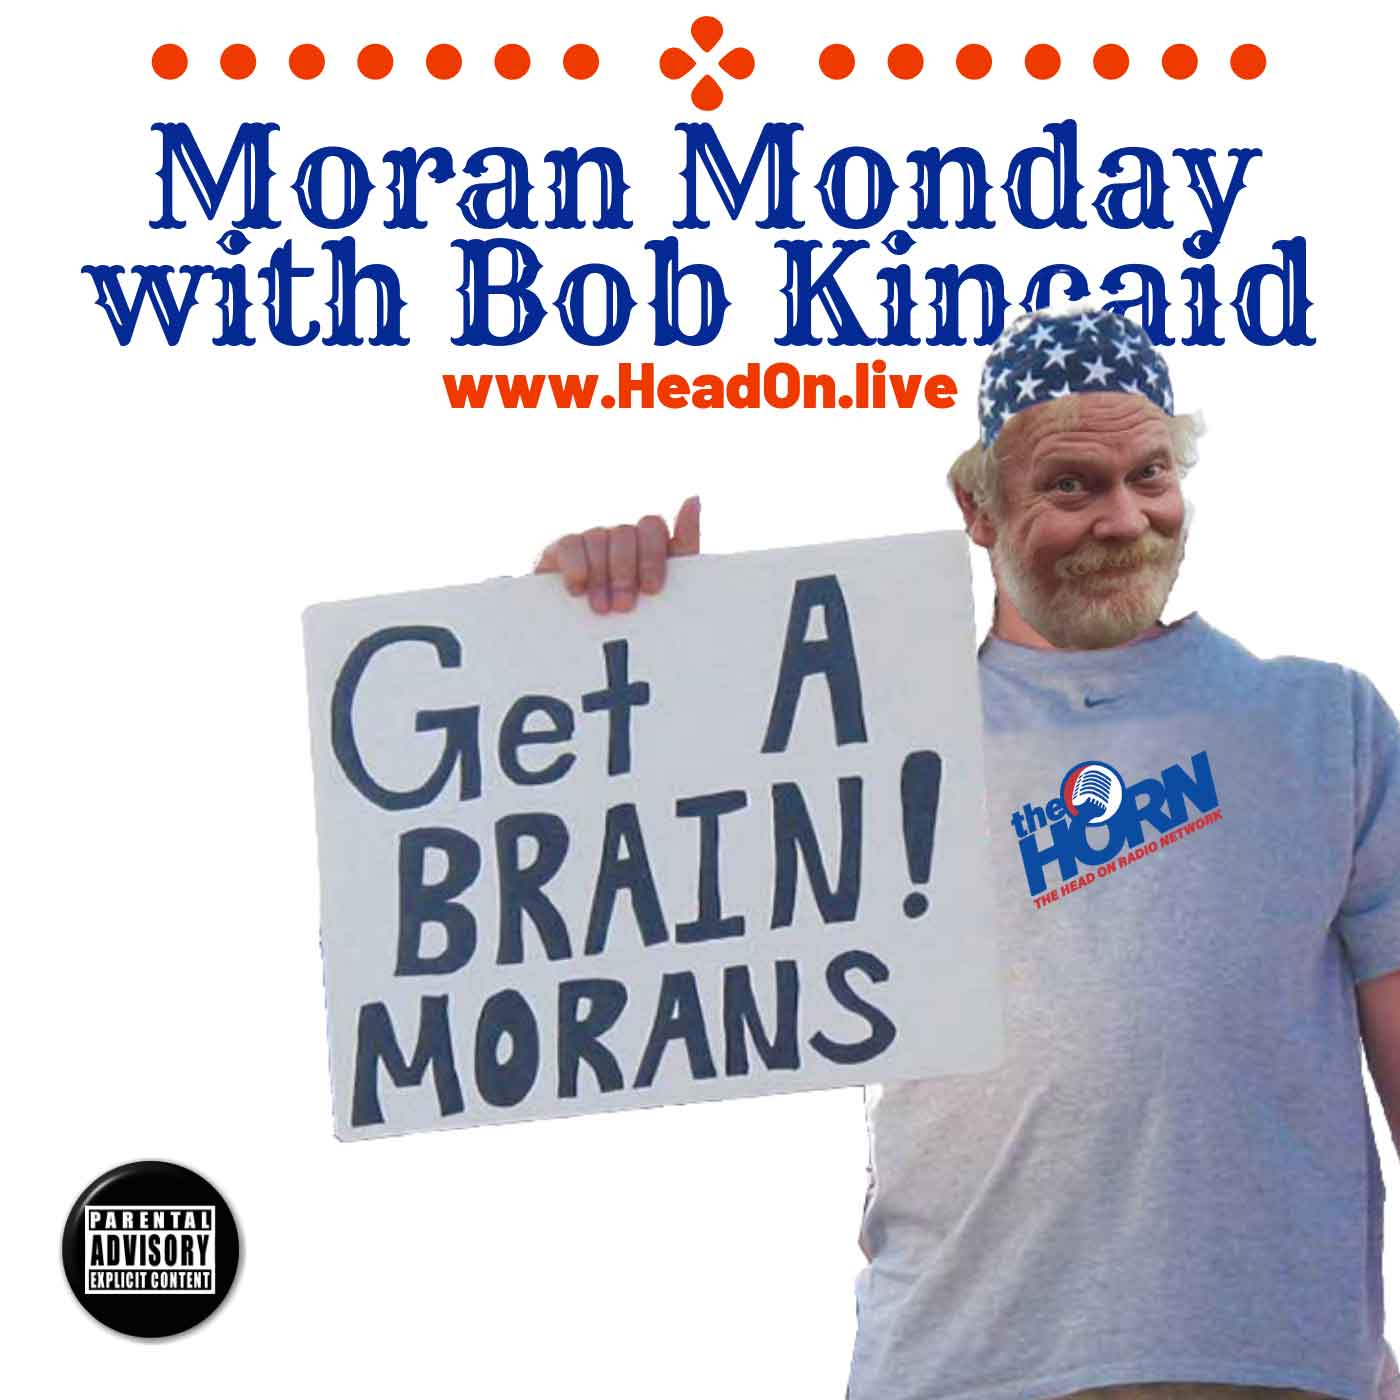 Morona Monday, Head-ON With Bob Kincaid, 22 June 2020